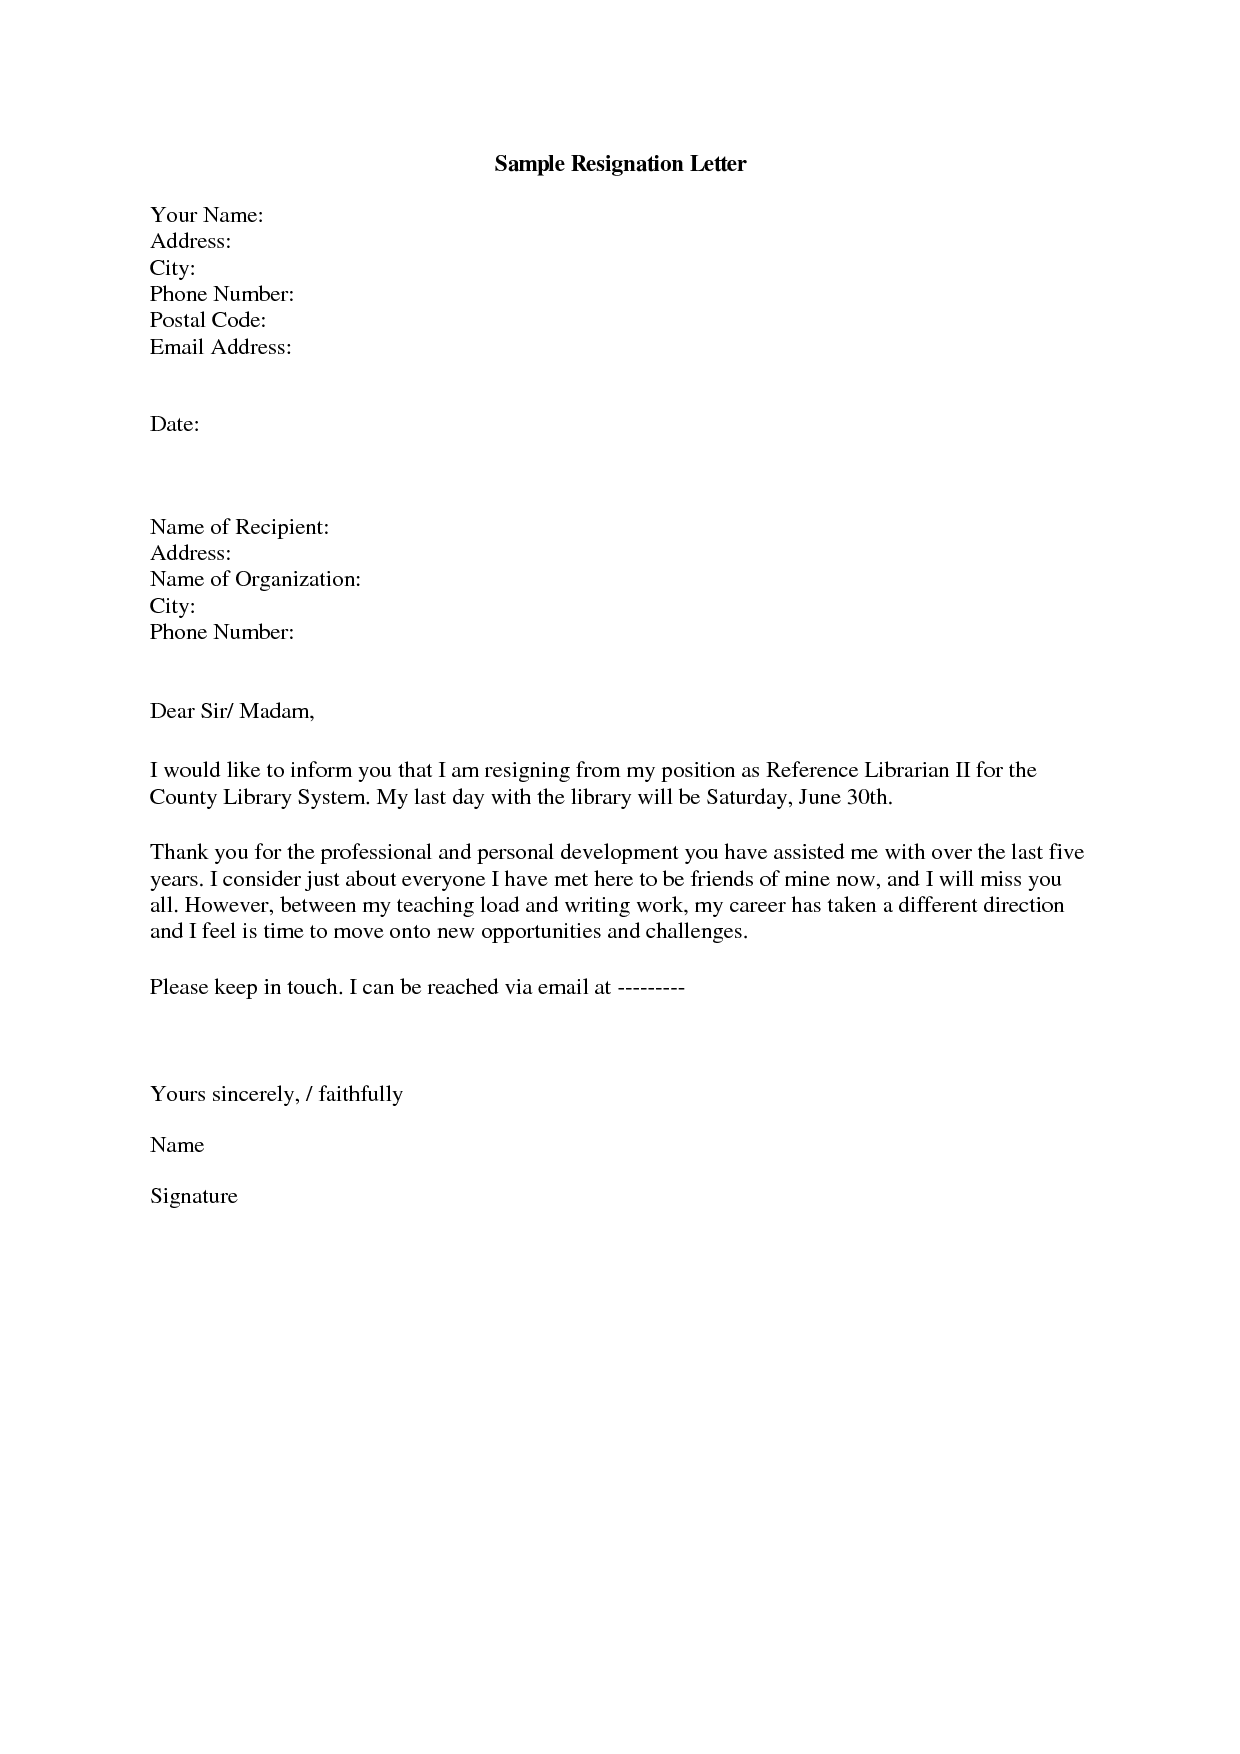 Email resignation letter sample 2015 pinterest letters thank you letter kindergarten teacher from pas all about for teaching quotes lawteched how write resignation preschool cover madrichimfo Choice Image